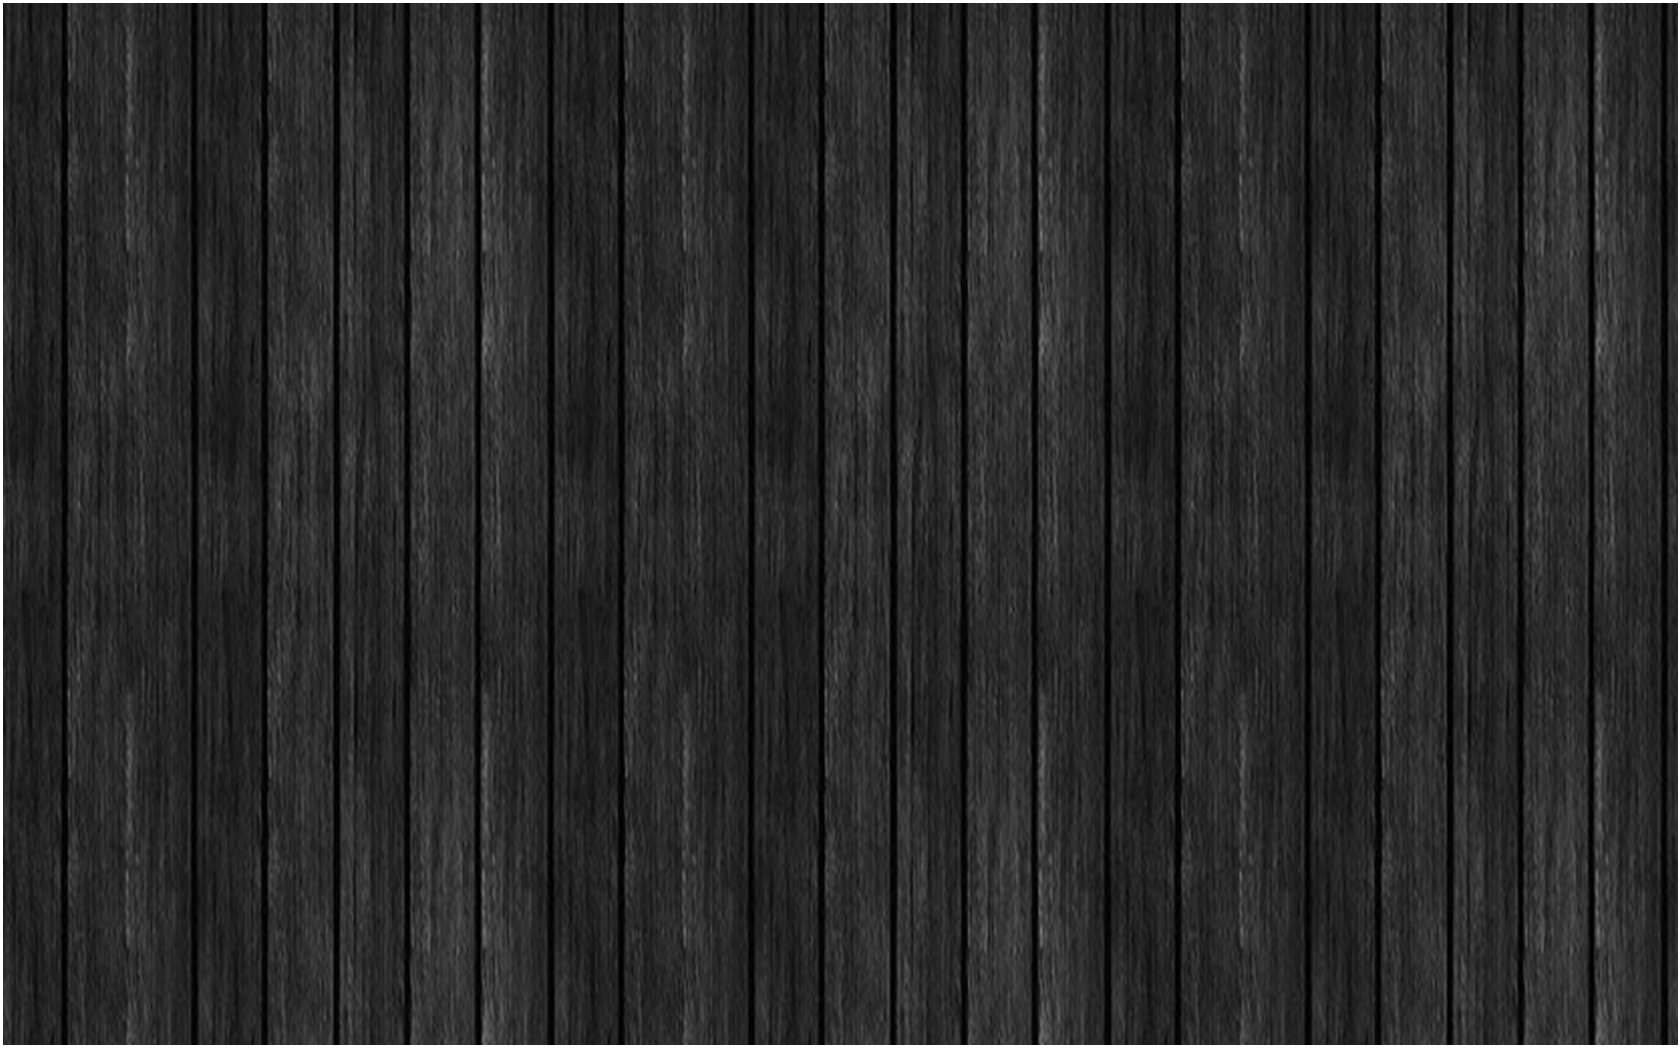 black wood wallpaper wallpapersafari. Black Bedroom Furniture Sets. Home Design Ideas